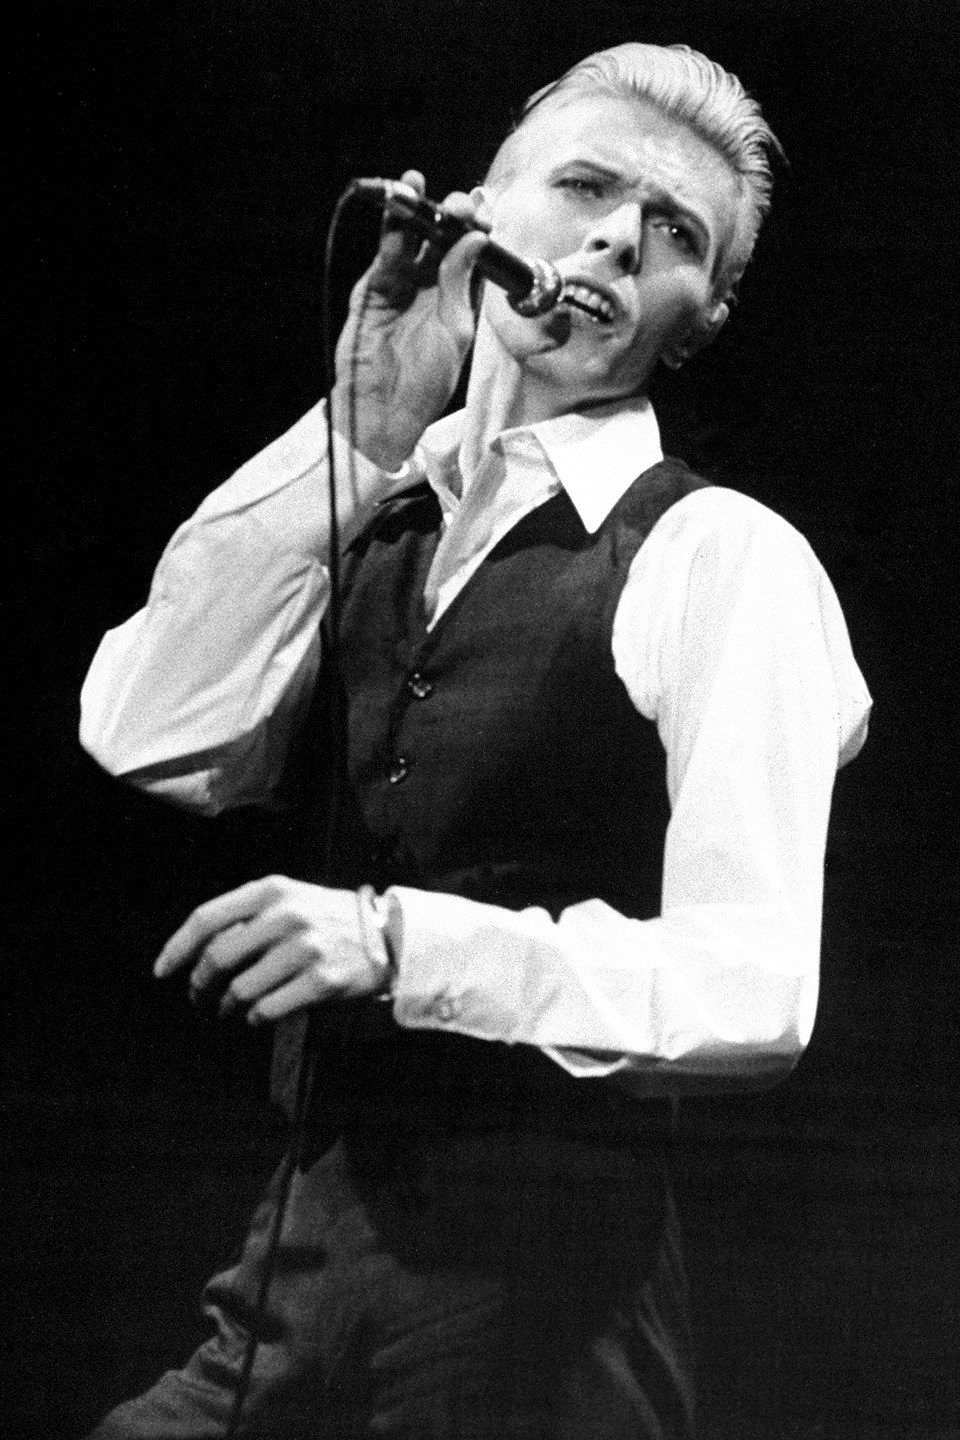 David Bowie at Madison Square Garden, 1976. From New York Daily News/Getty Images.